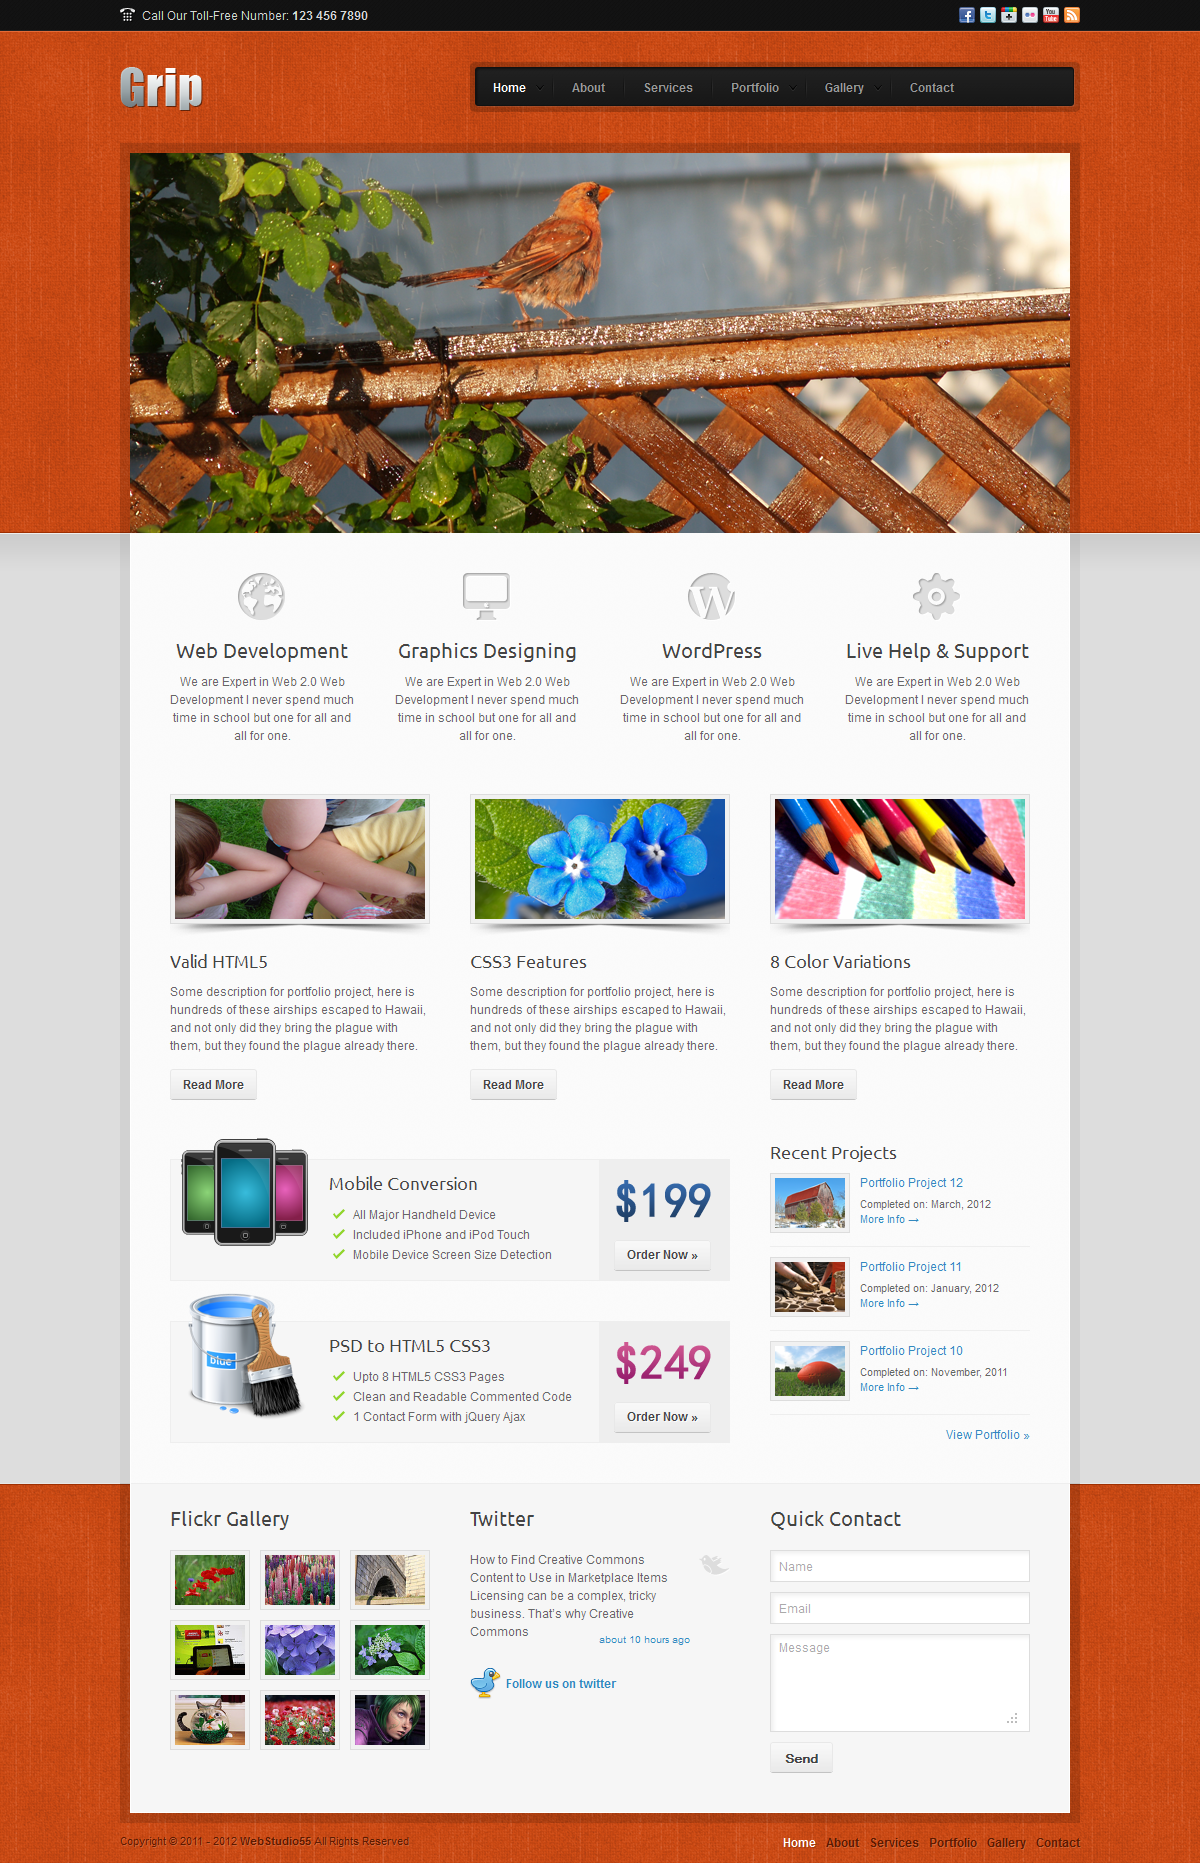 Grip Corporate Business HTML Template - Home Page Orange Grip Corporate Business HTML Template, 8 stylish color skins and clean layout for your Corporate Business, 5 Home Page variations with 3 different Contents Slider, 16 HTML5 SEO Optimized Templates, Filterable Portfolio with 5 styles.